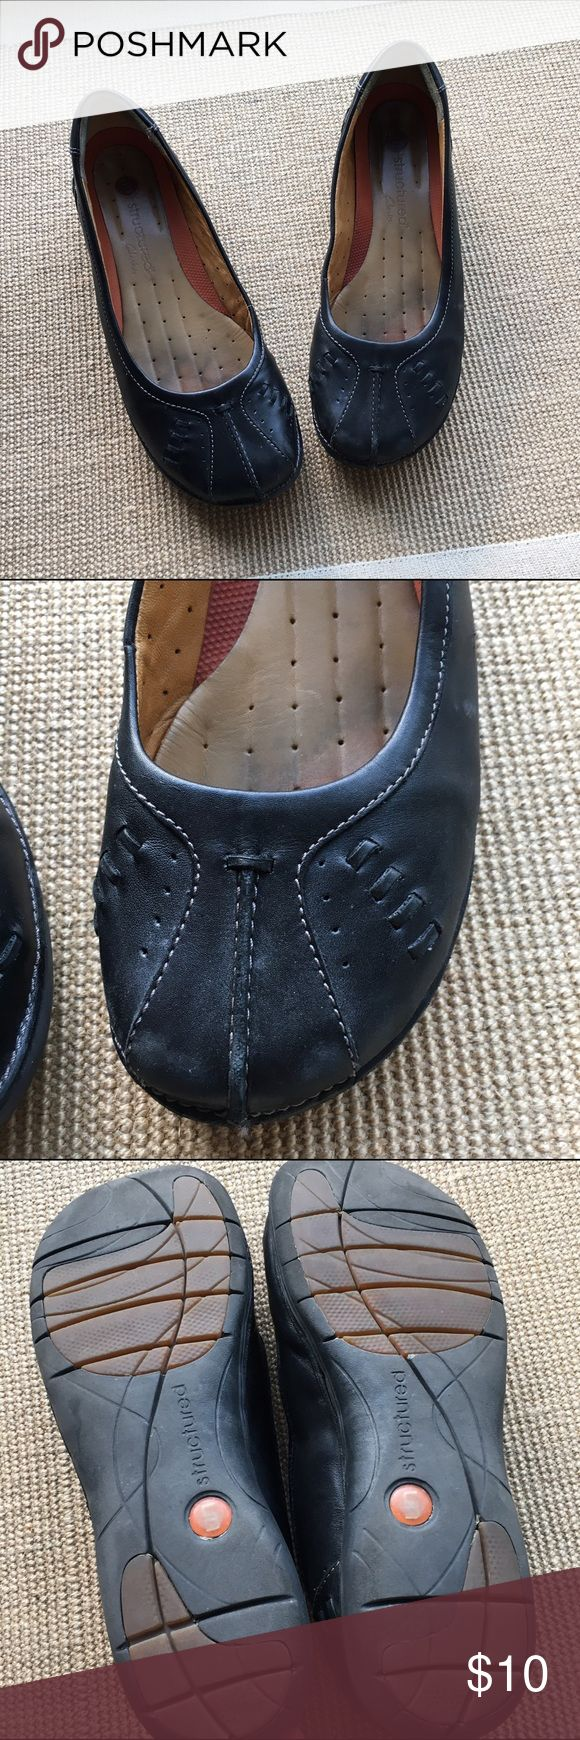 Clarks Unstructured Flats One of the most comfortable shoes you will wear! These Clark Unstructured flats are the best of two worlds-cute and comfy! Shows signs of wear but still in good condition. Clarks Shoes Flats & Loafers